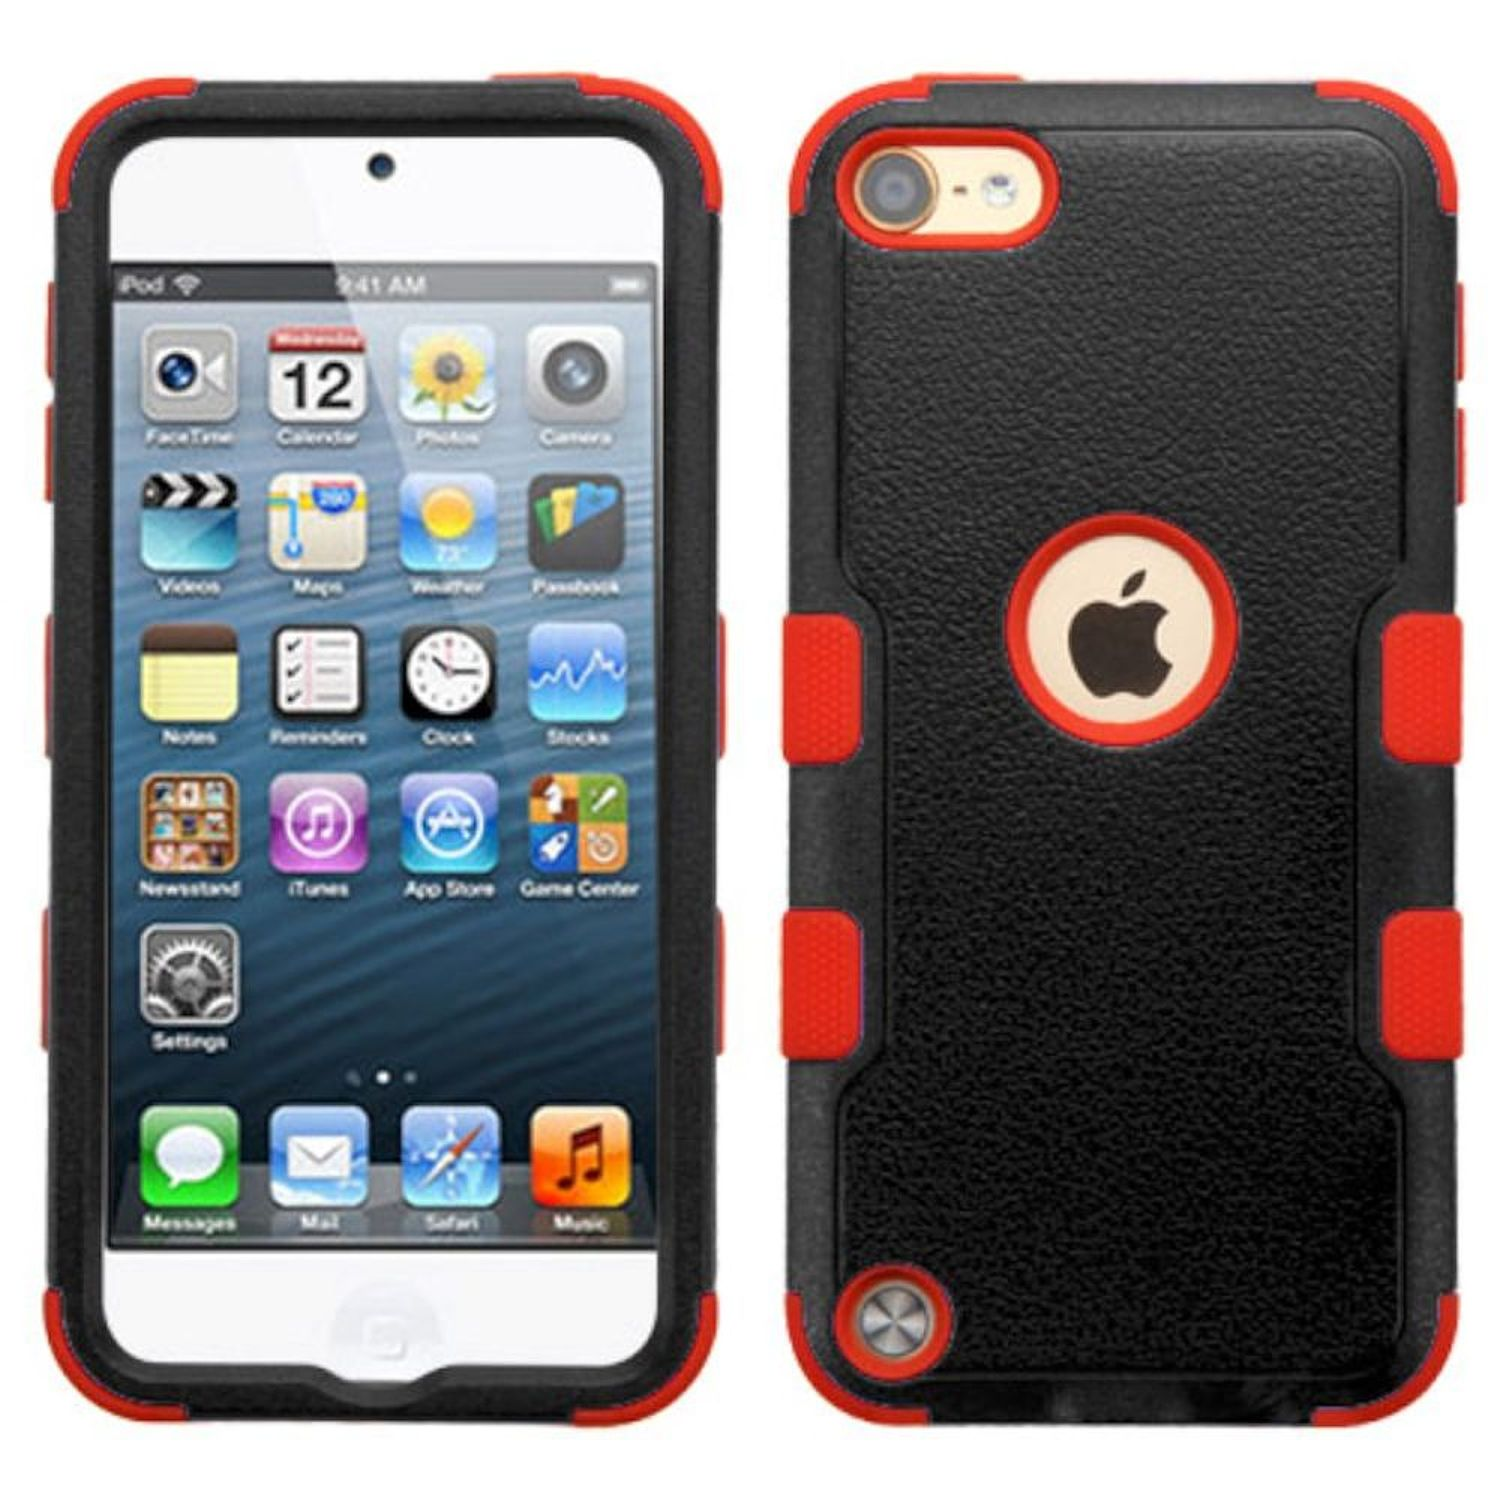 Insten Tuff Hard Dual Layer Rubber Silicone Case For Apple iPod Touch 5th Gen/6th Gen - Black/Red